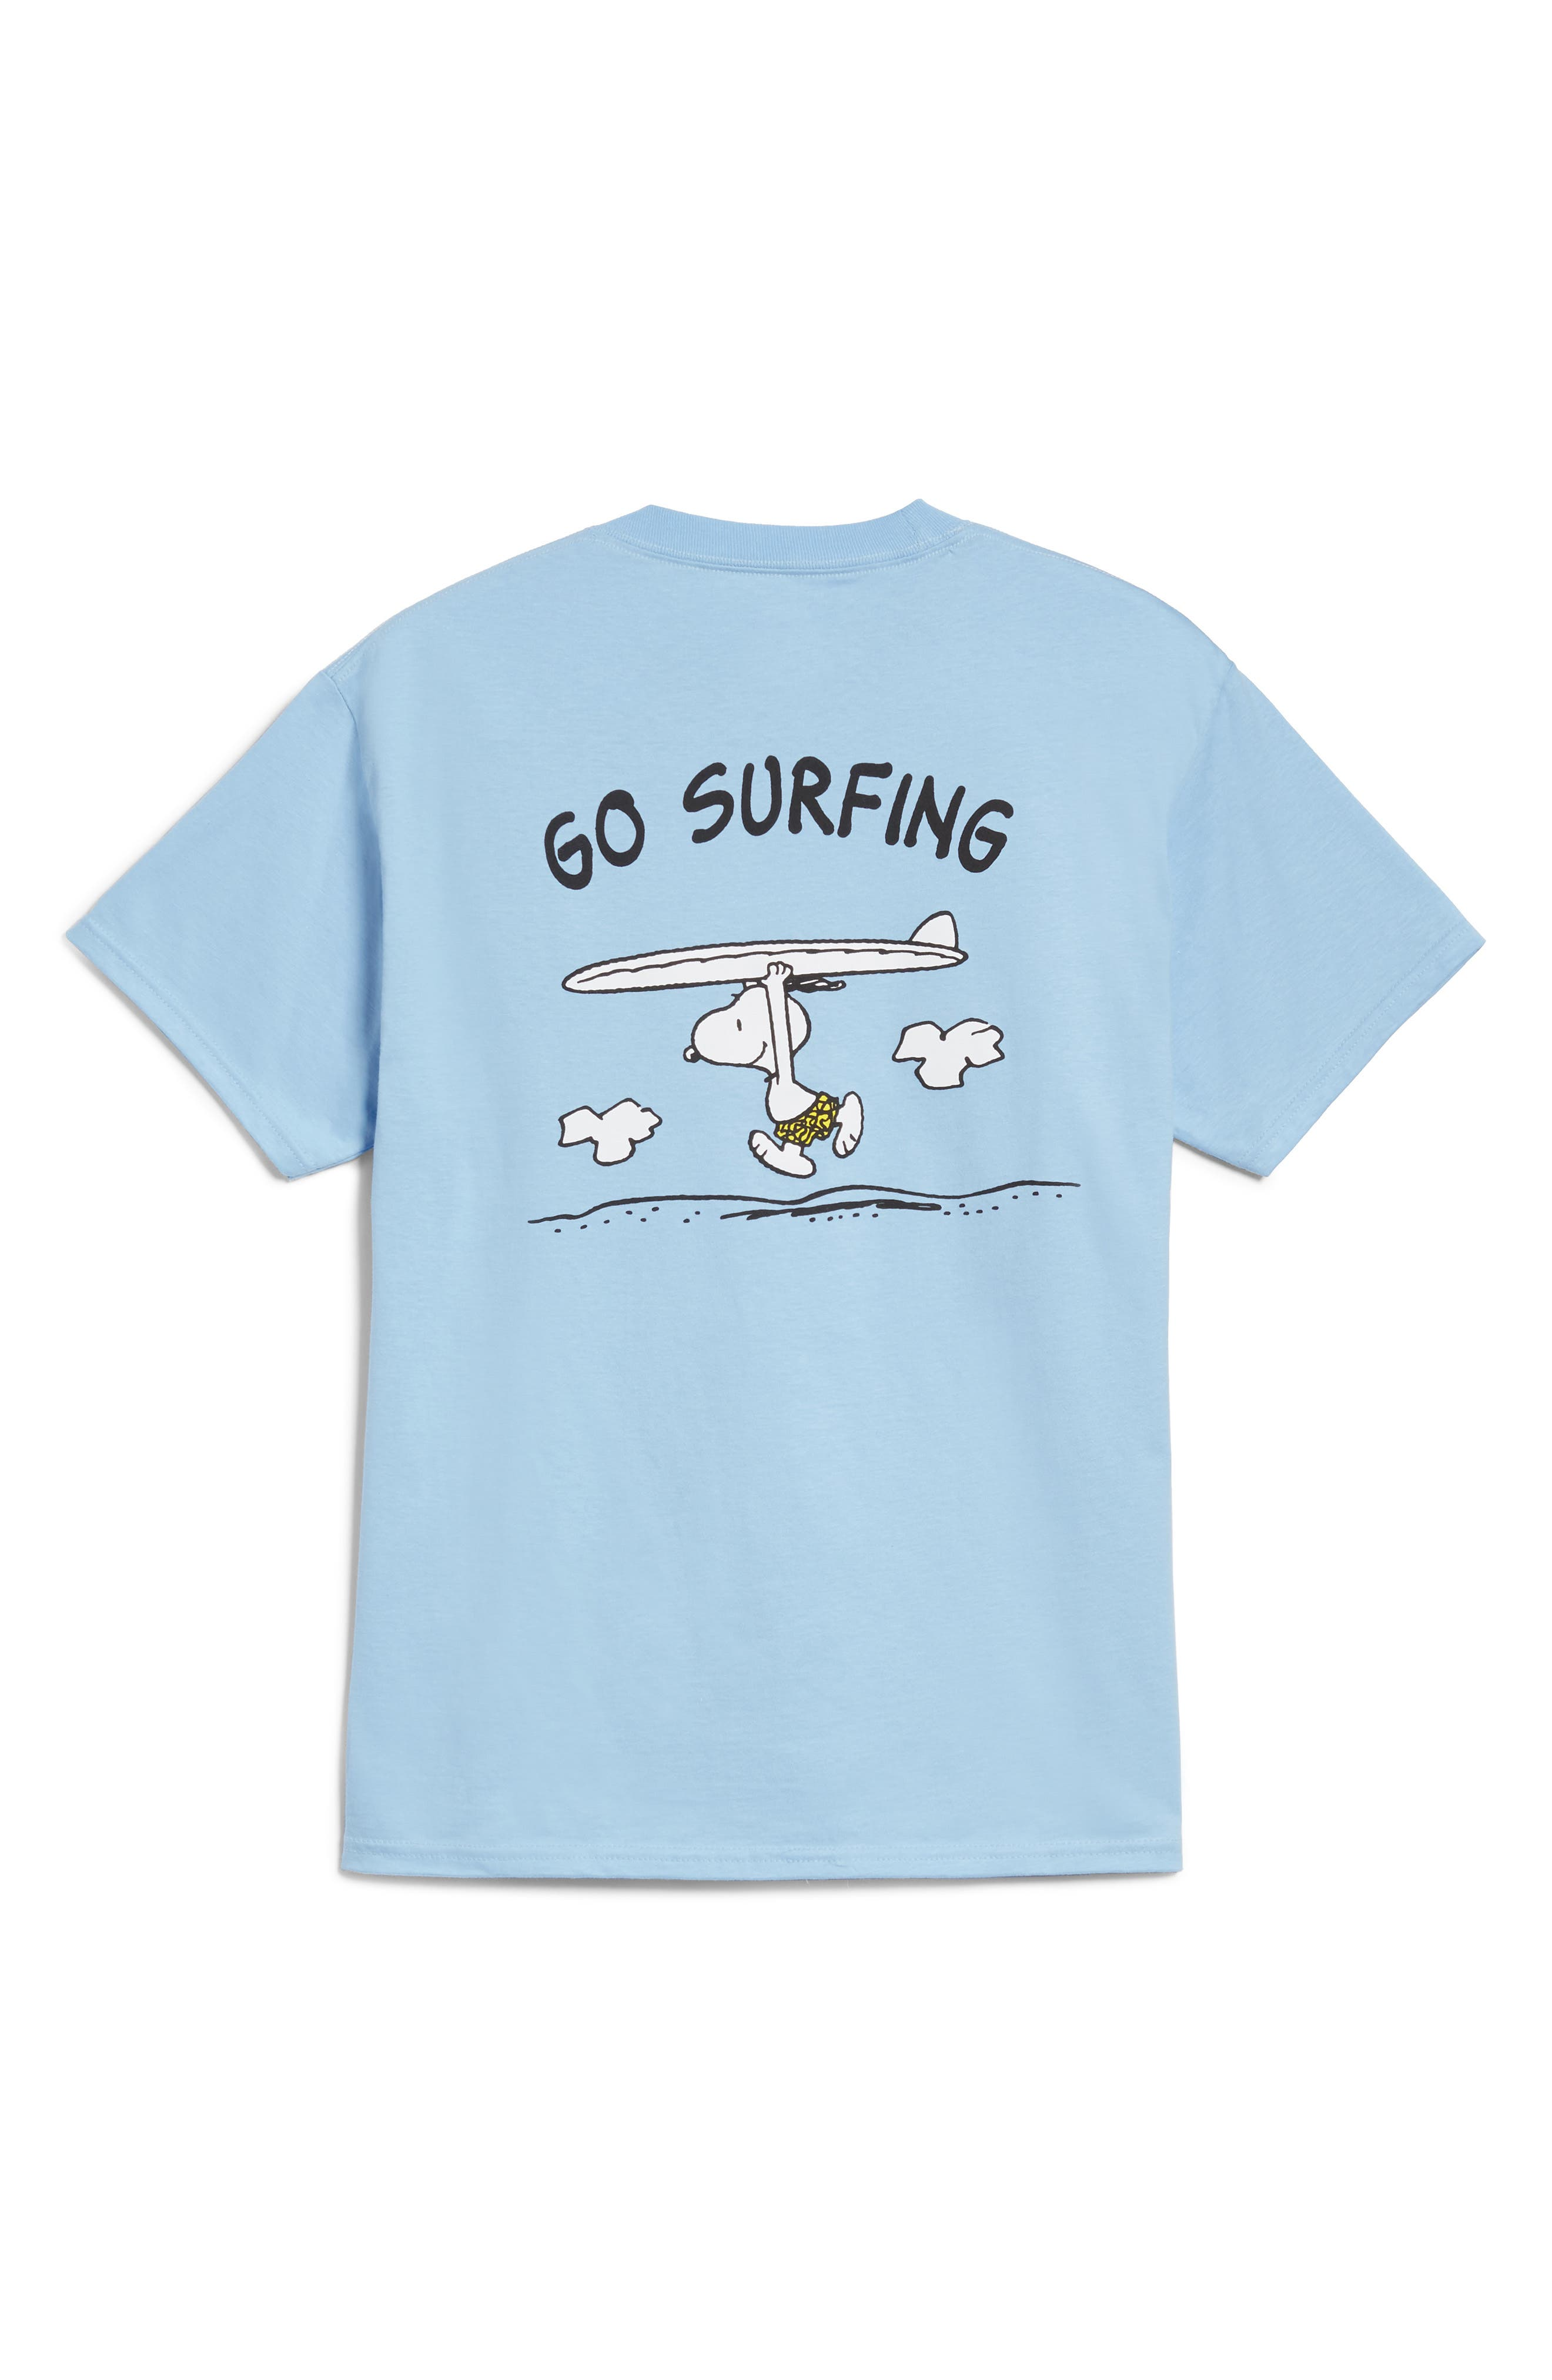 Peanuts Go Surfing T-Shirt